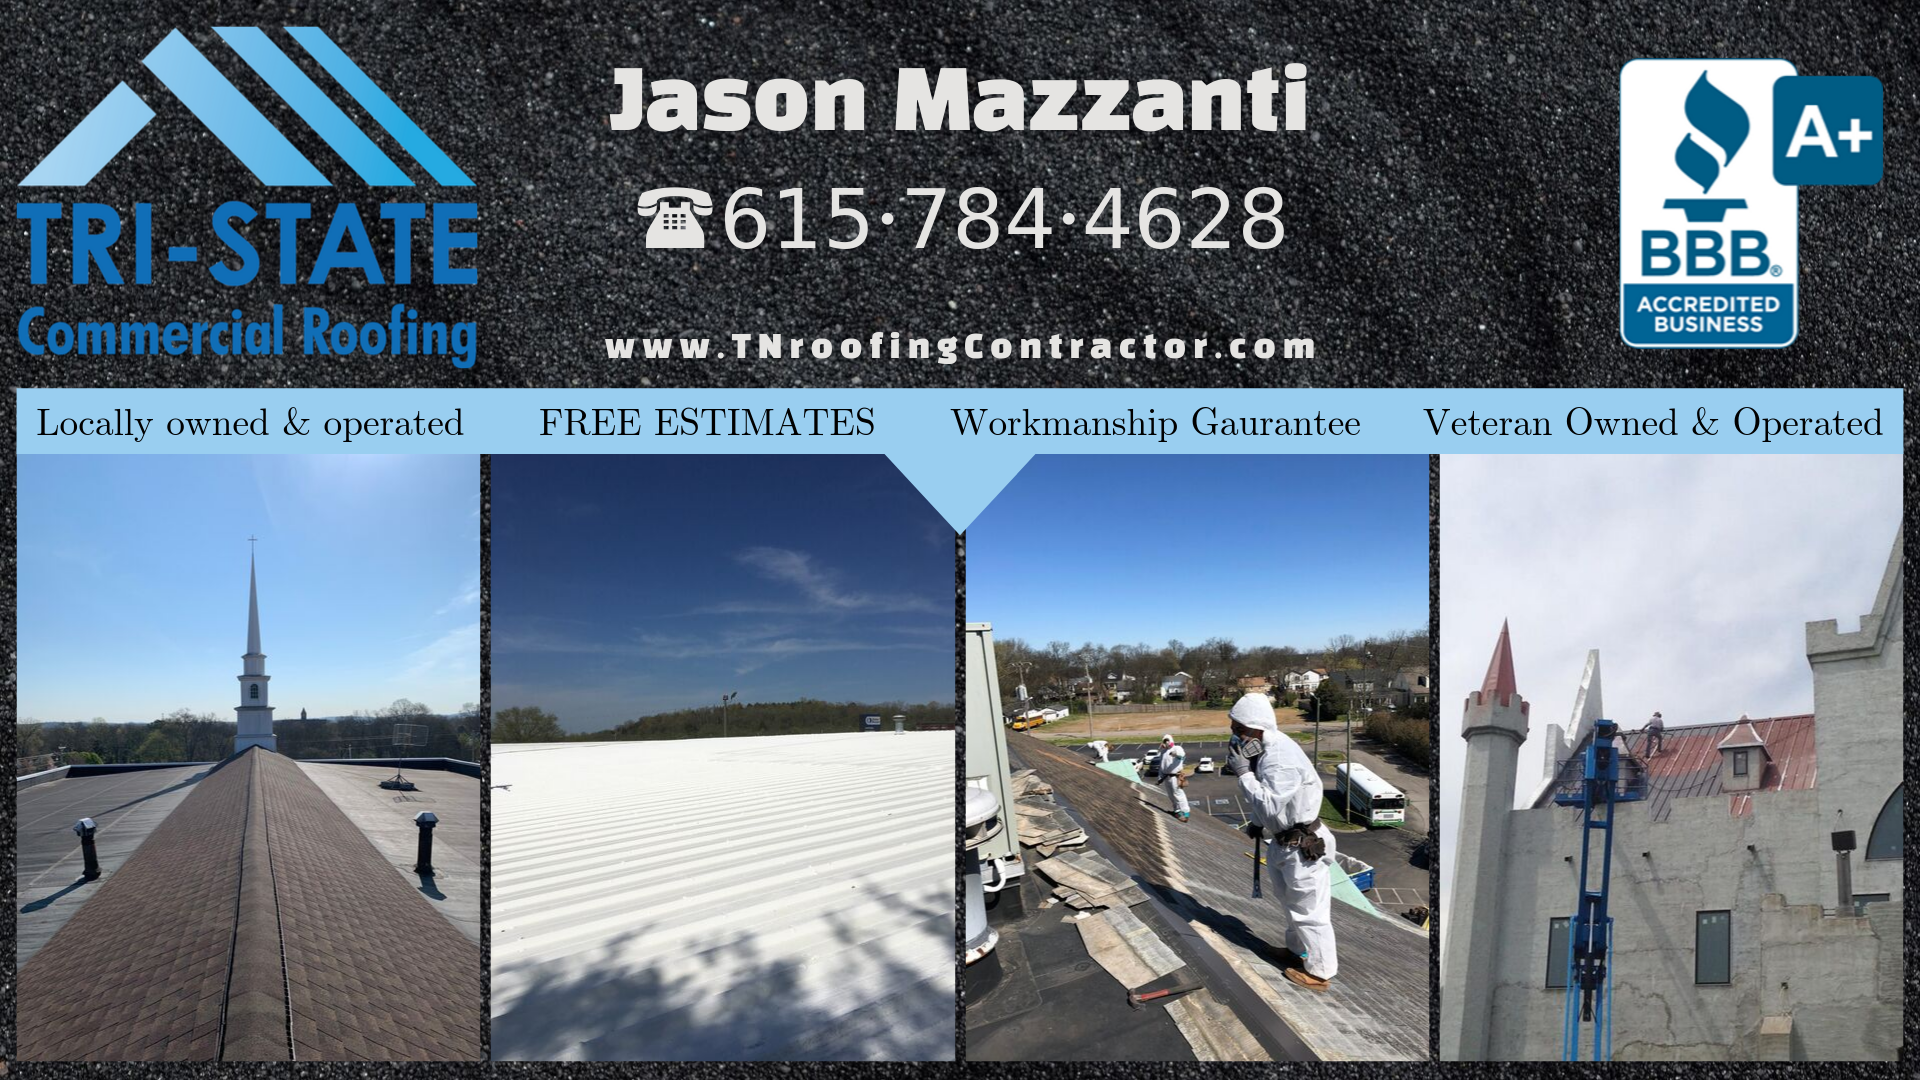 Tri-State Commercial Roofing works on all commercial roofing systems.